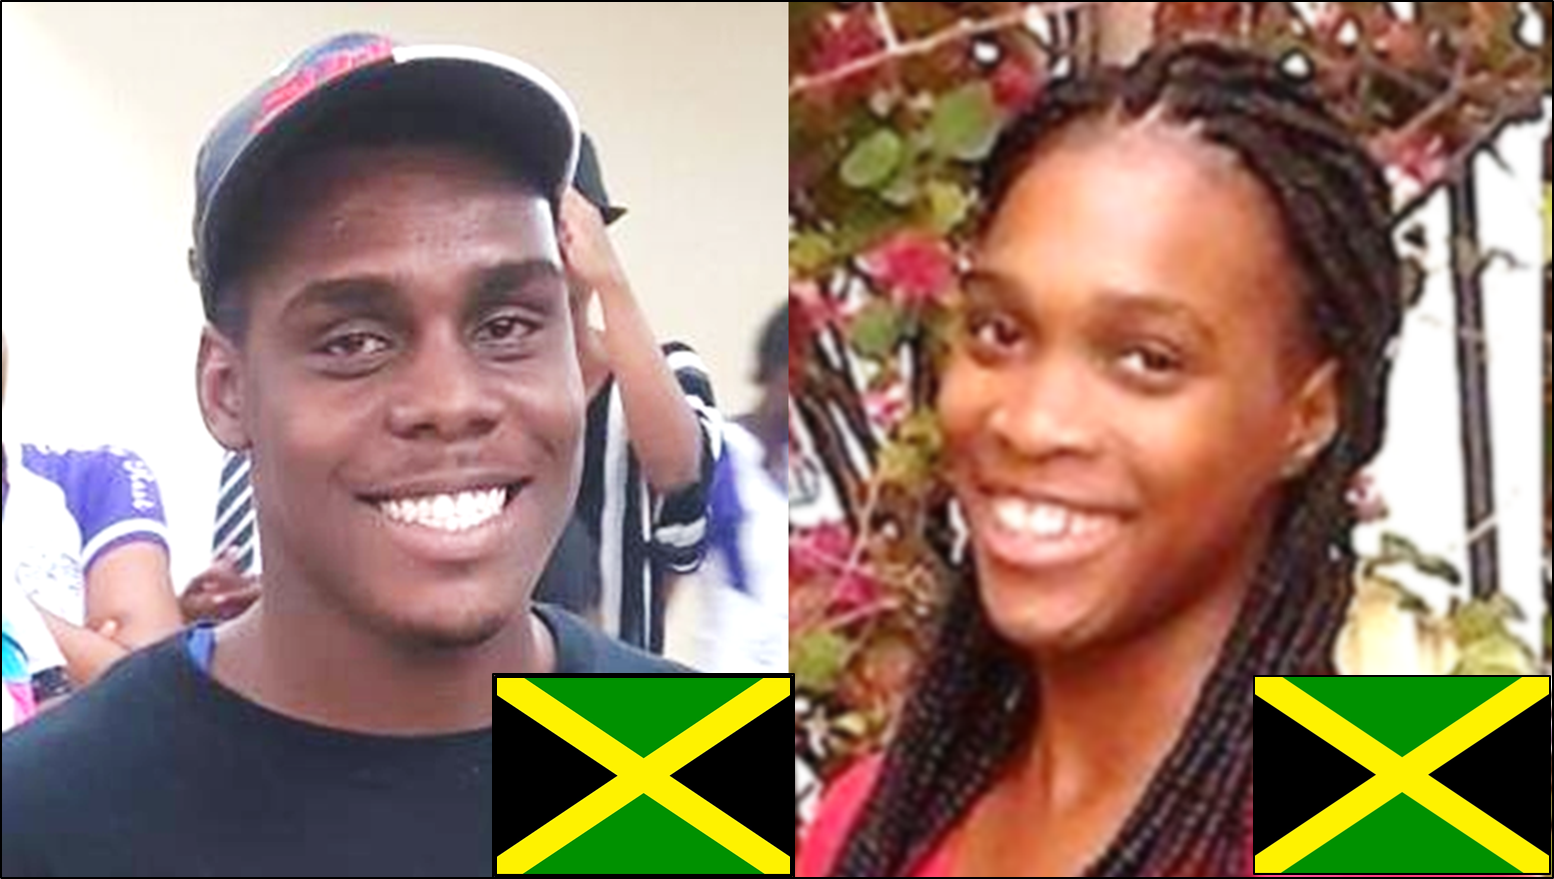 Thumbnail for the post titled: Jamaican Students Join SCSC 2017